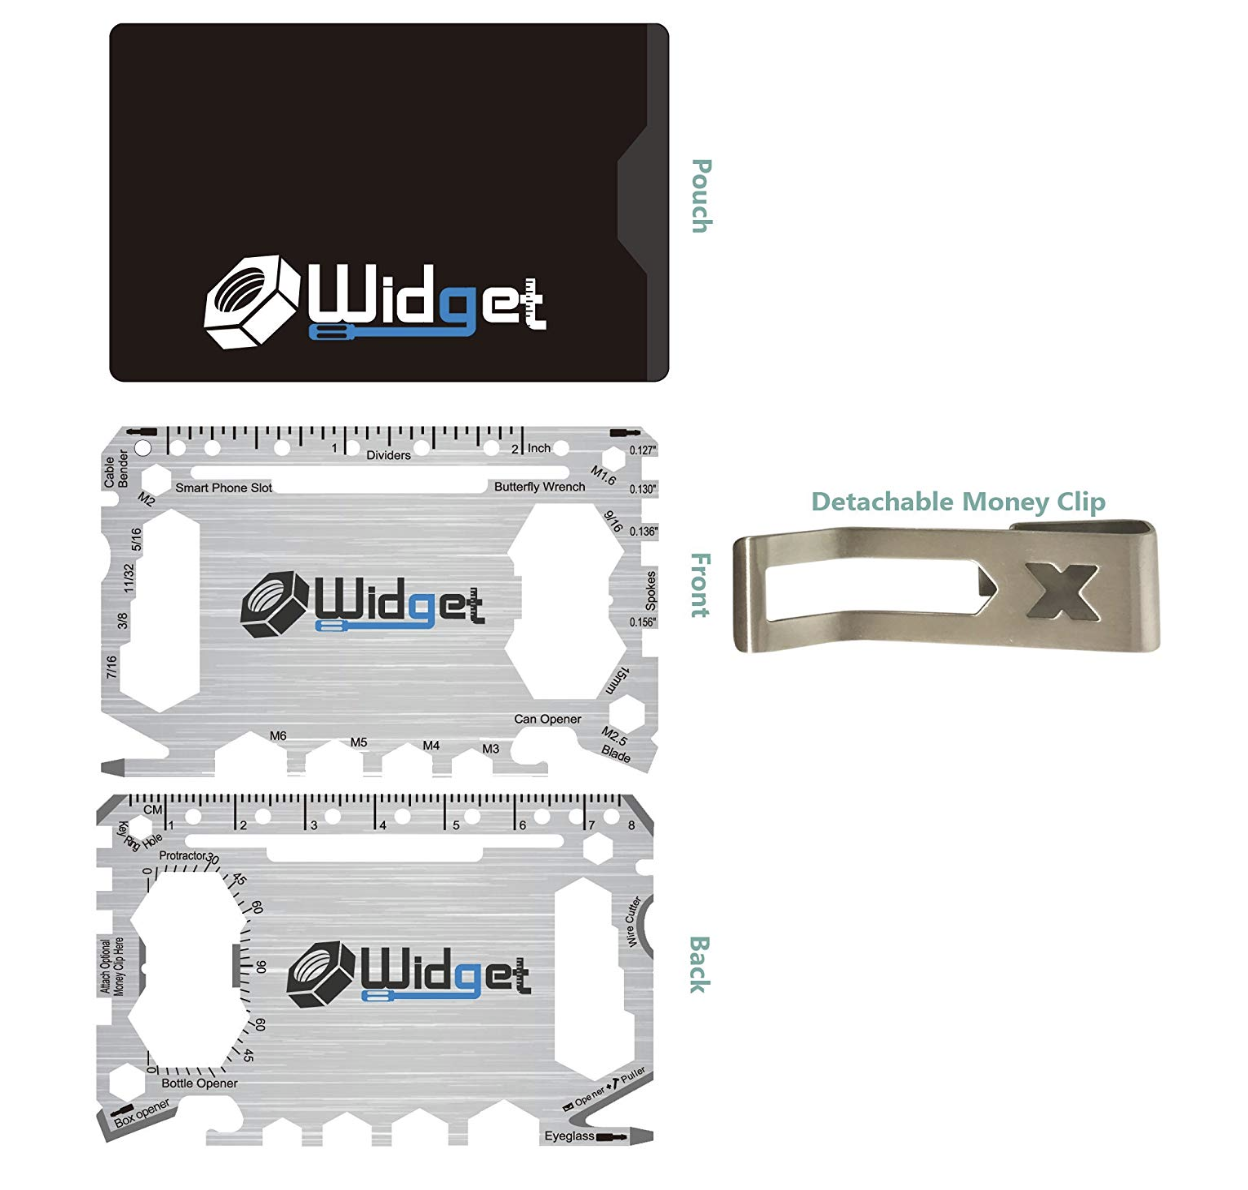 43-in-1 Multi-Purpose Survival Pocket Tool With Money Clip